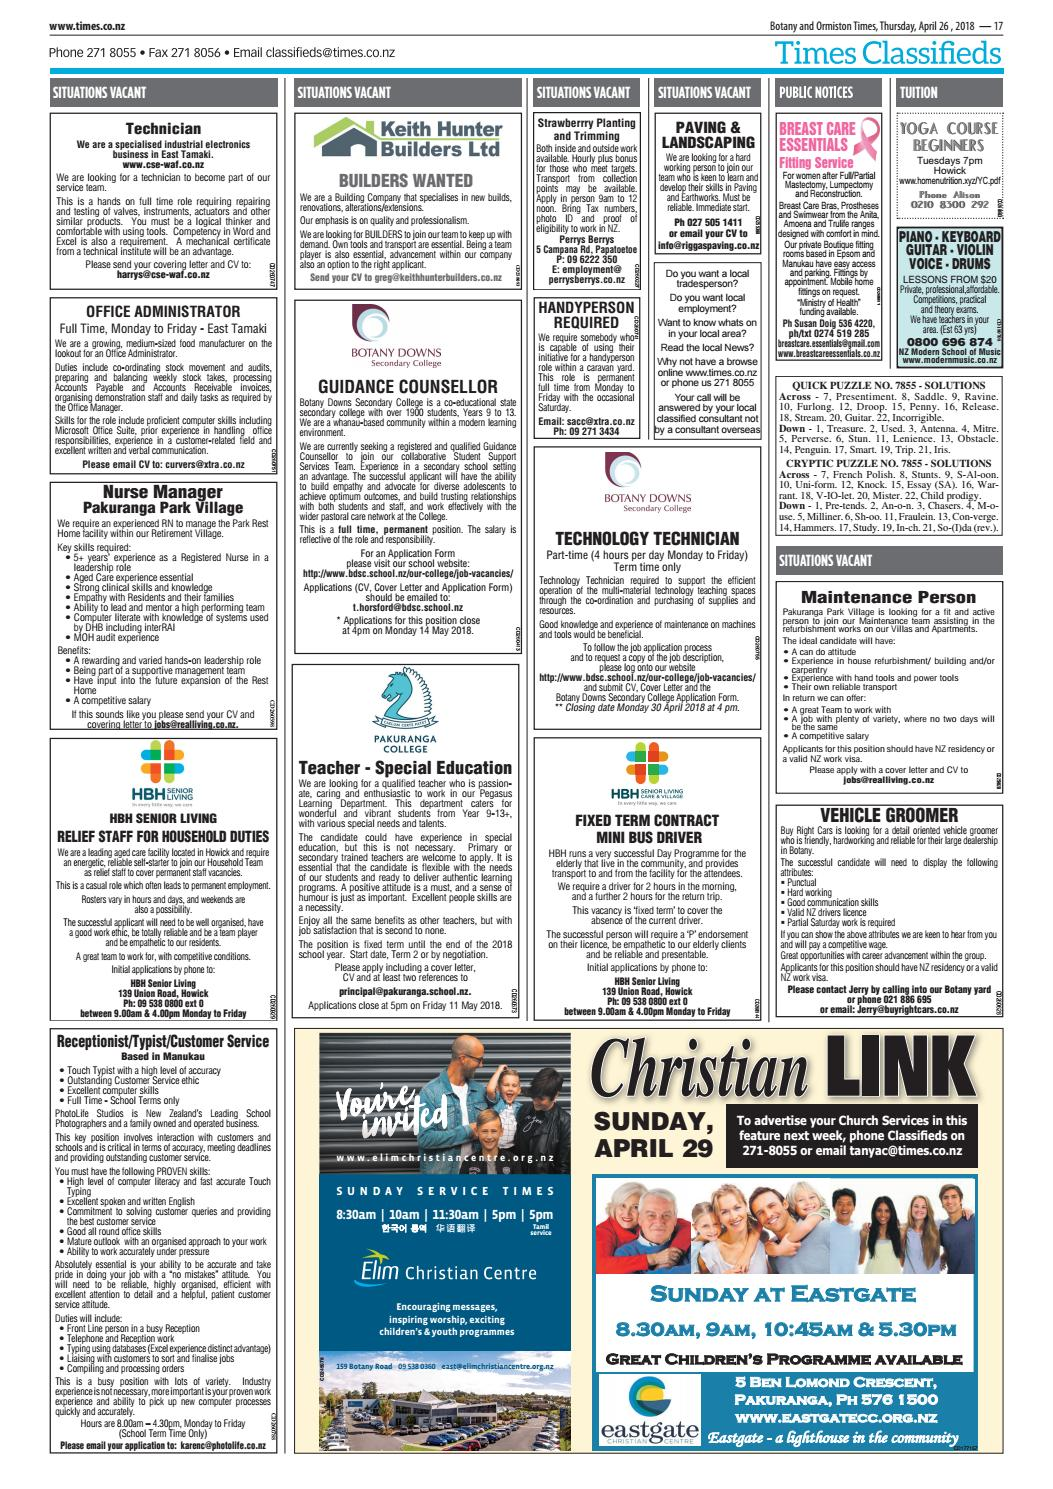 Botany and Ormiston Times, April 26, 2018 by Times Media - issuu